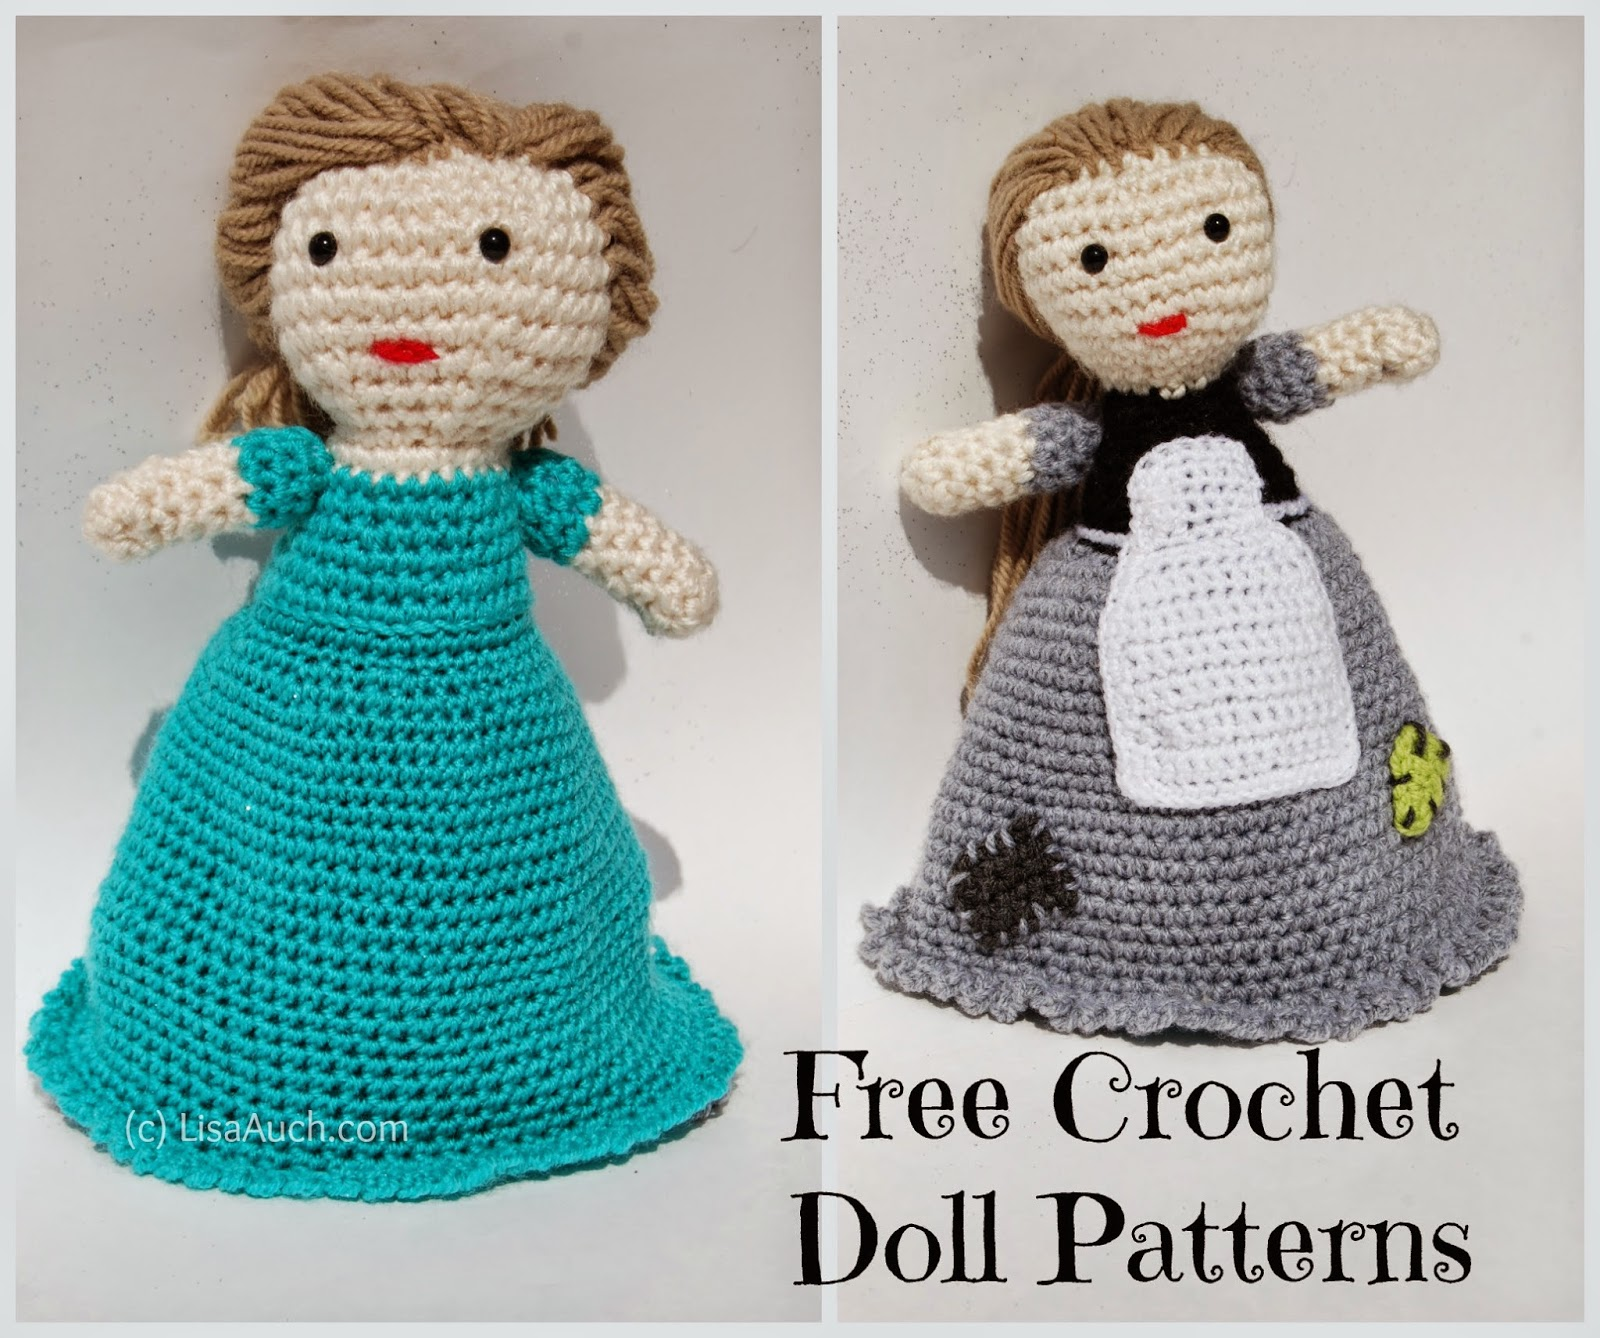 free crochet doll pattern, free crochet doll patterns, free pattern for doll  crochet, QKDOQNE